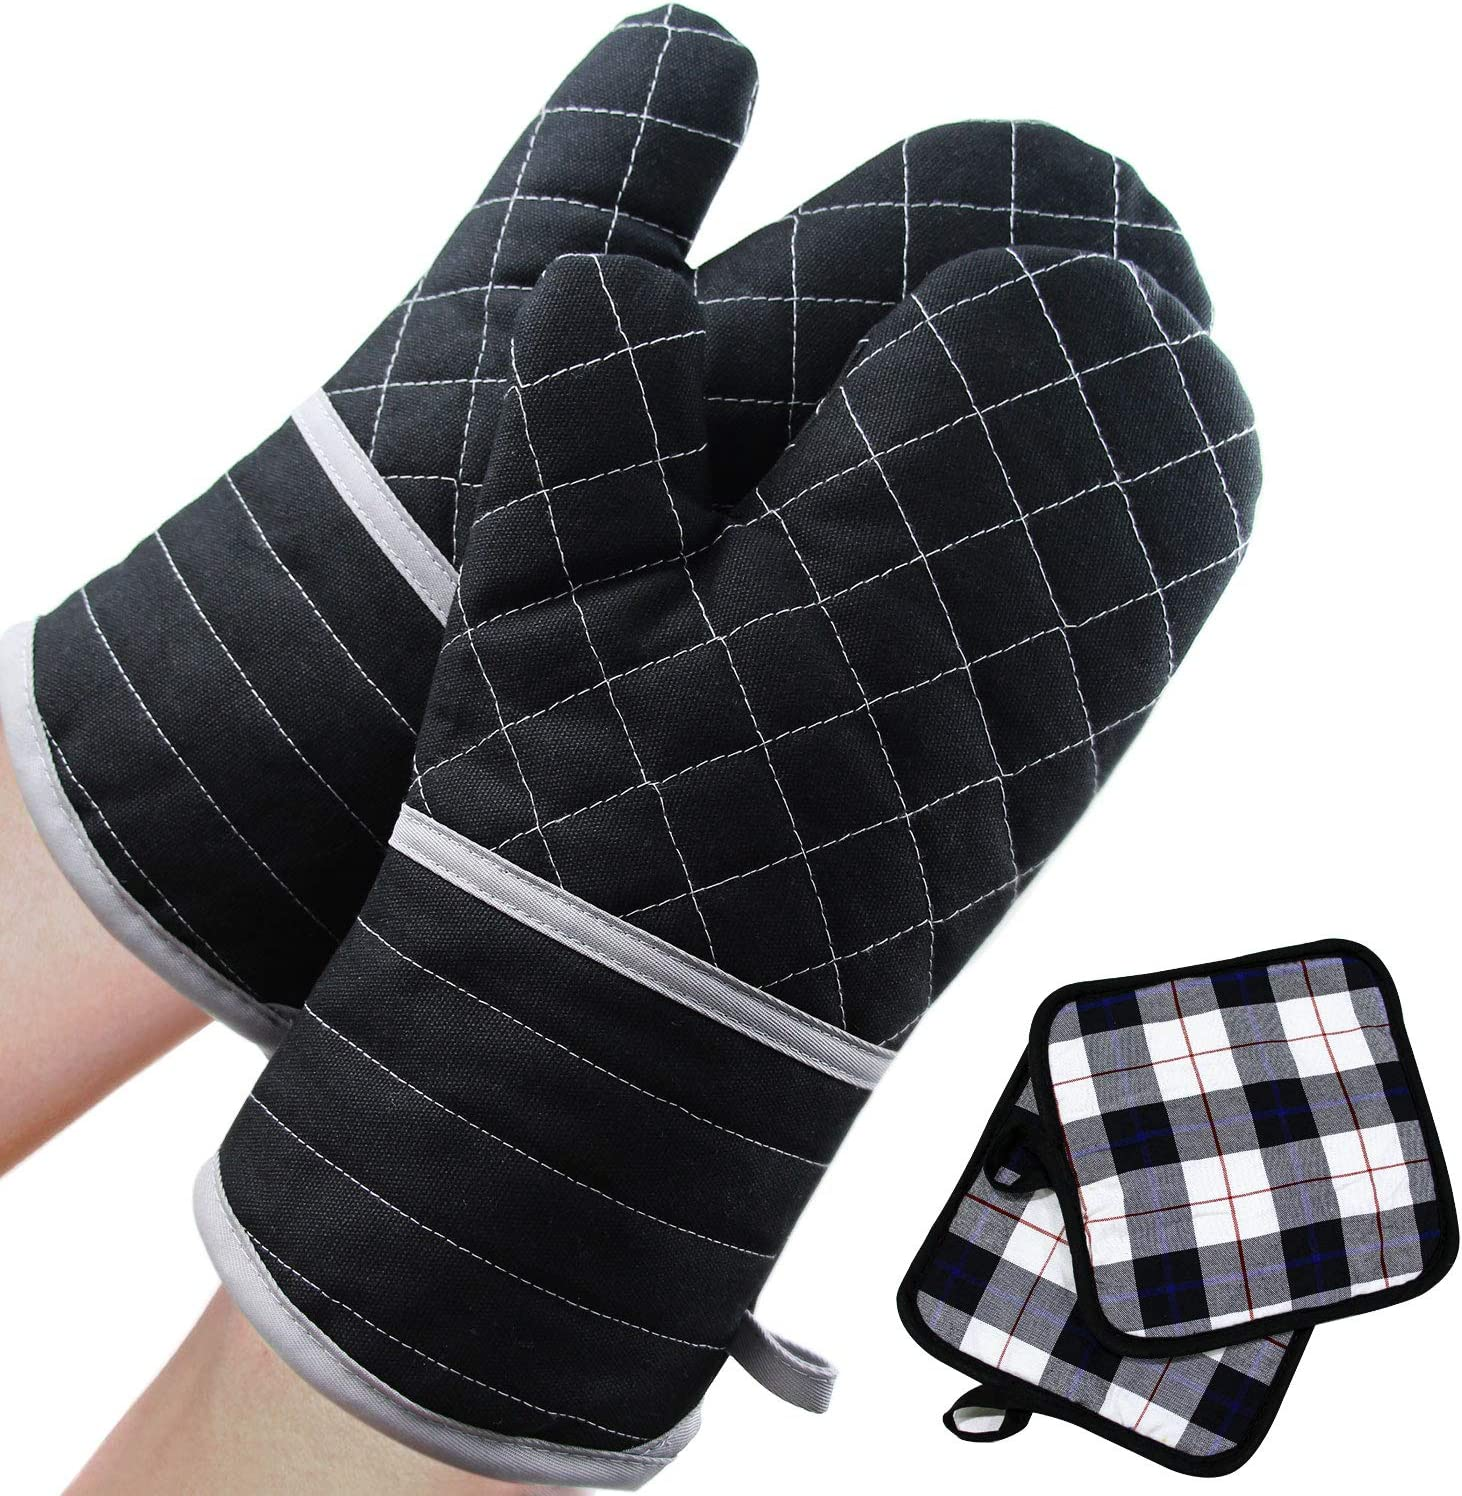 SANXIA Oven Mitts and Pot Holders, 500℉ Heat Resistant Kitchen Cooking Microwave Baking Mitts Gloves (Black) (1 Pair)